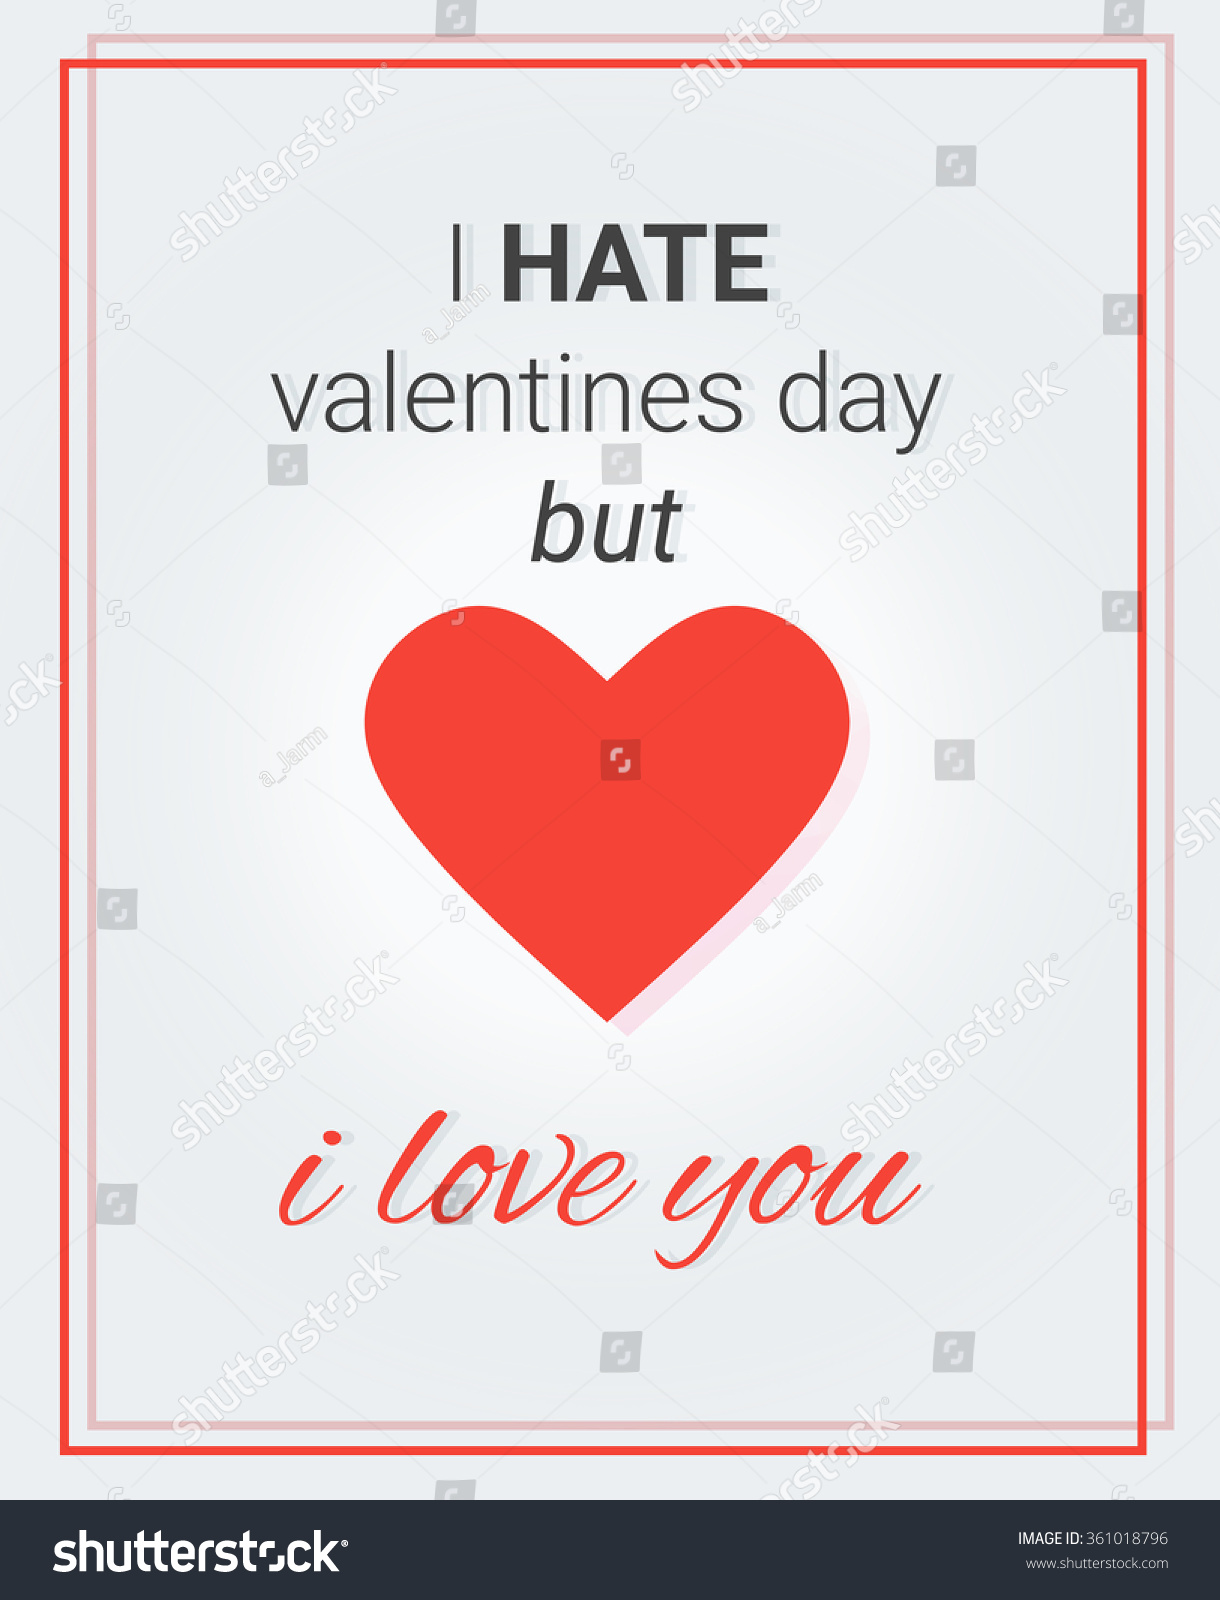 Poster Heart Text Hate Valentines Day Stock Vector Royalty Free